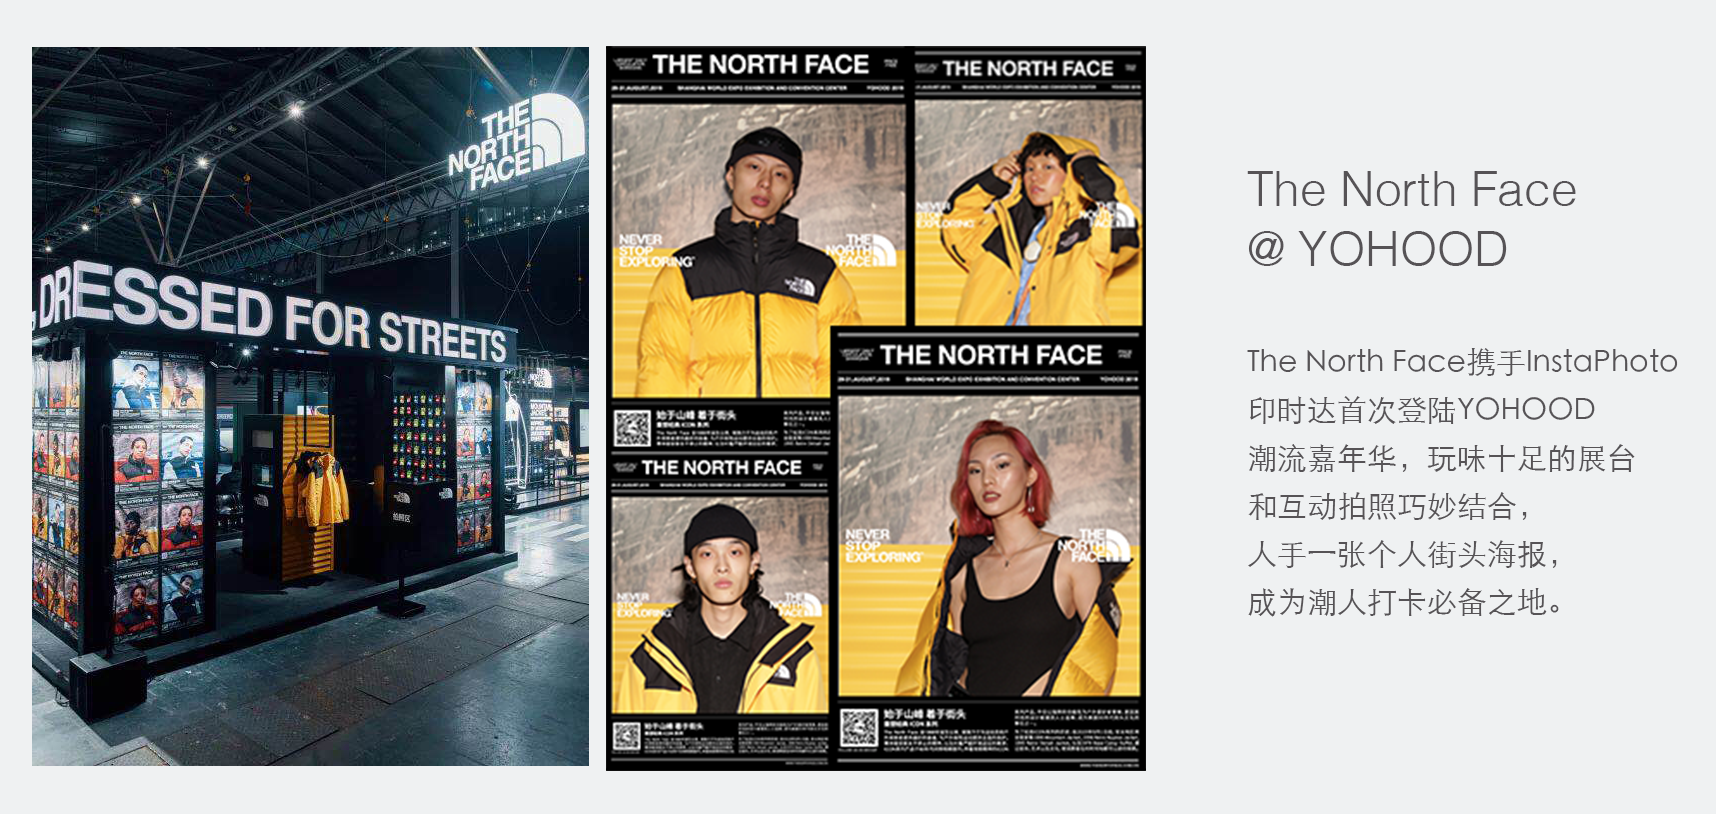 tnf0911 ch.png